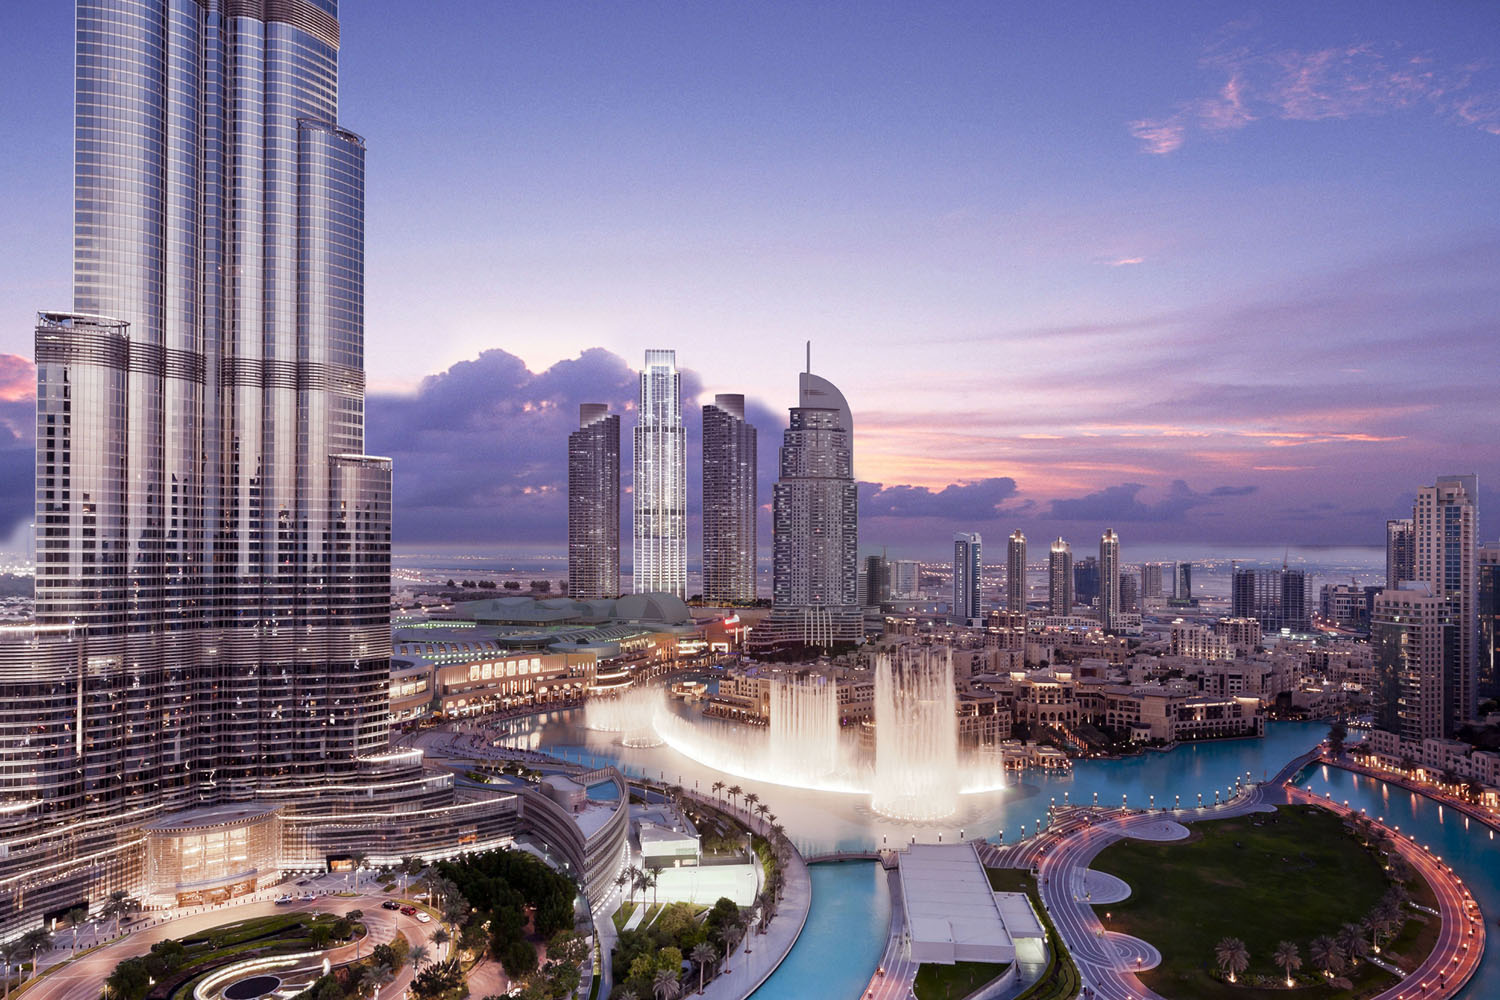 The Address Residence Fountain Views Tower Project - Downtown Dubai